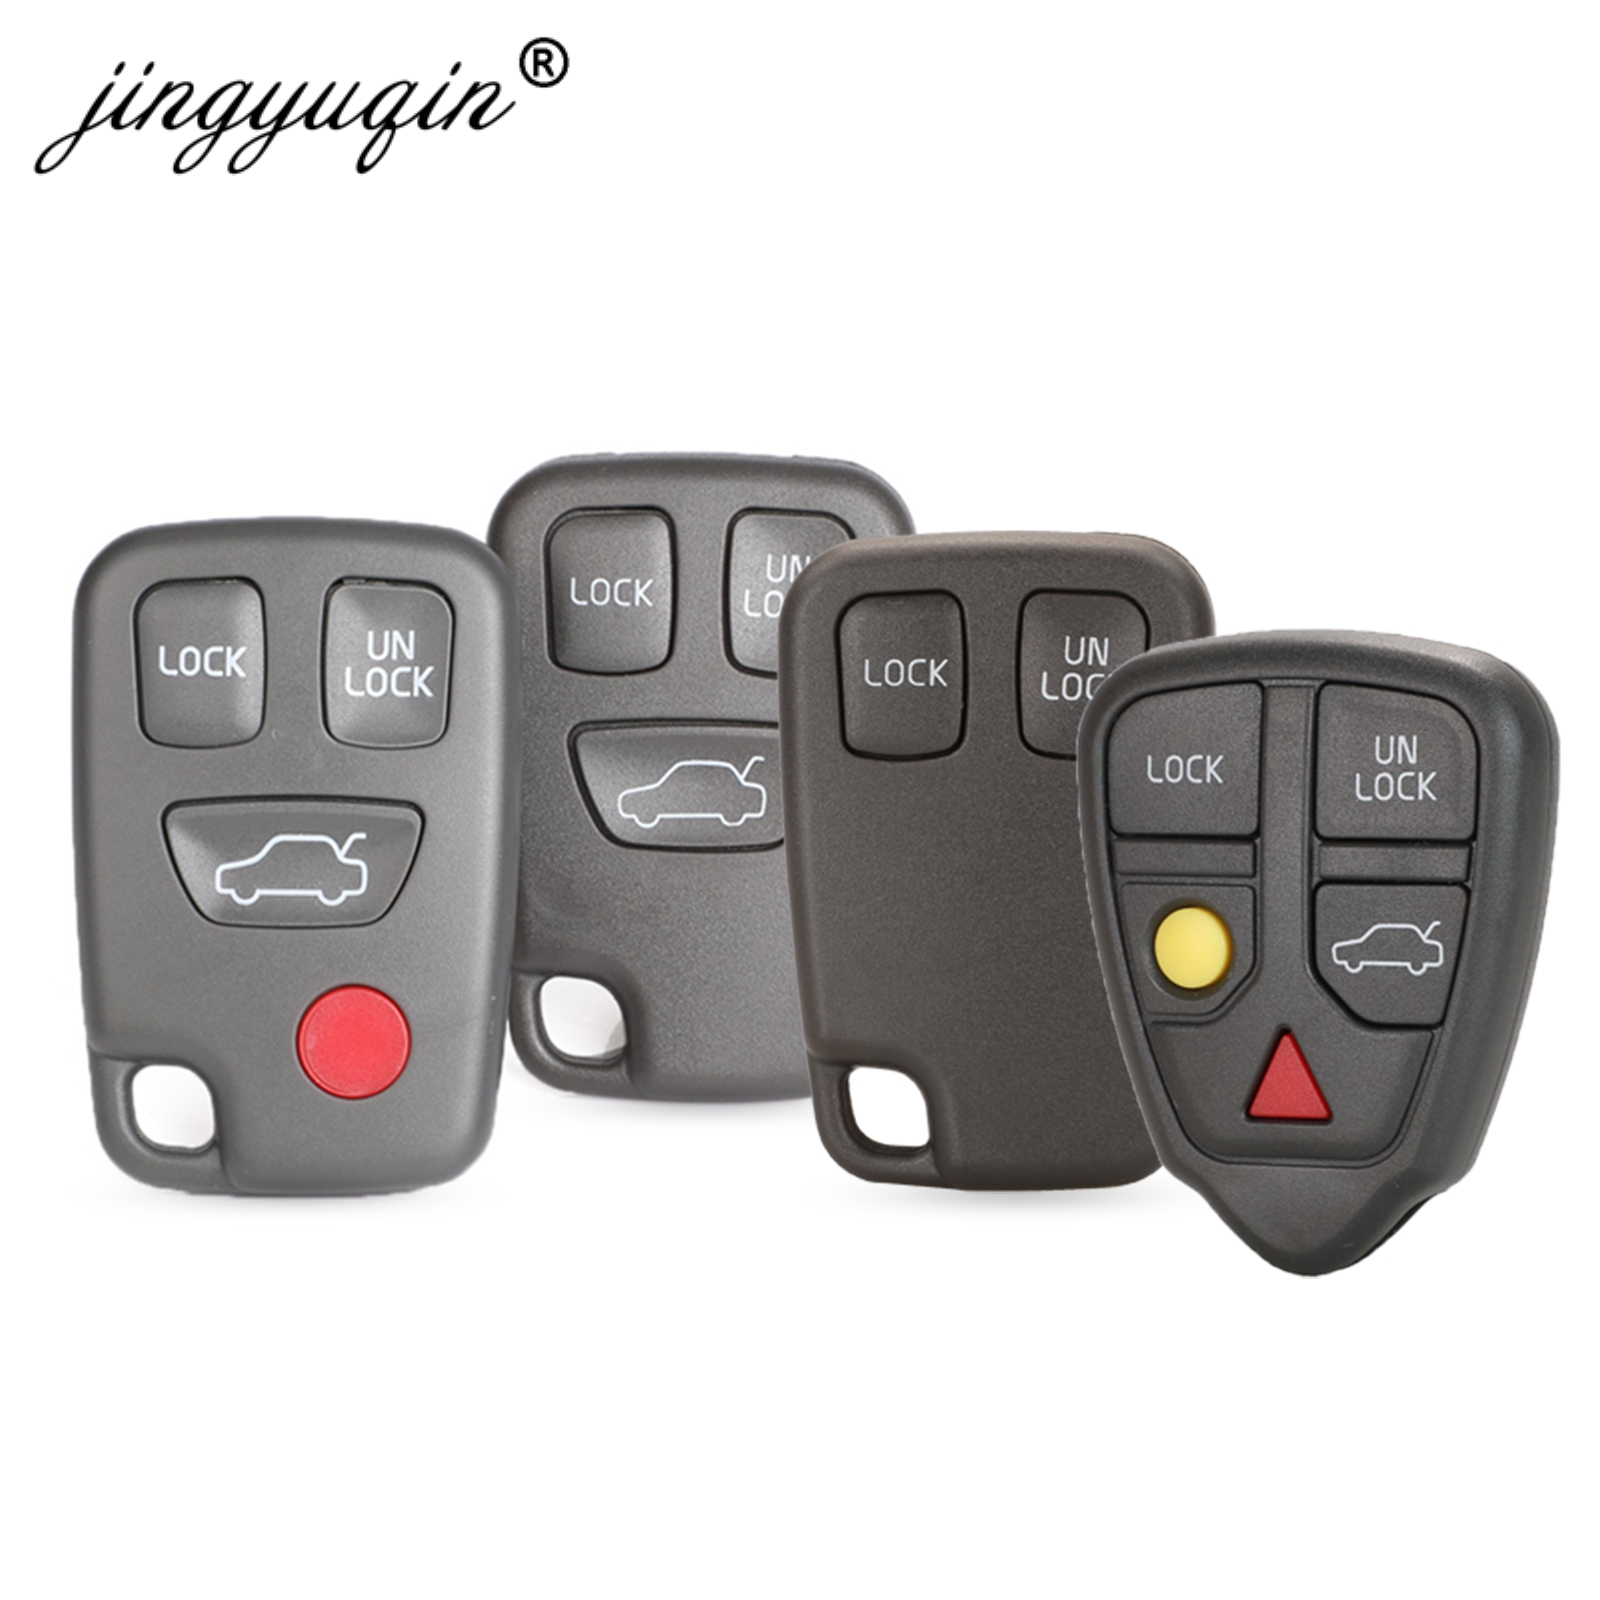 jingyuqin Remote Fob Car Key Shell Case Replacement 2/3/4/5 Butto For VOLVO S70 V70 C70 S40 V40 1998-2005 Auto Key Cover Housing